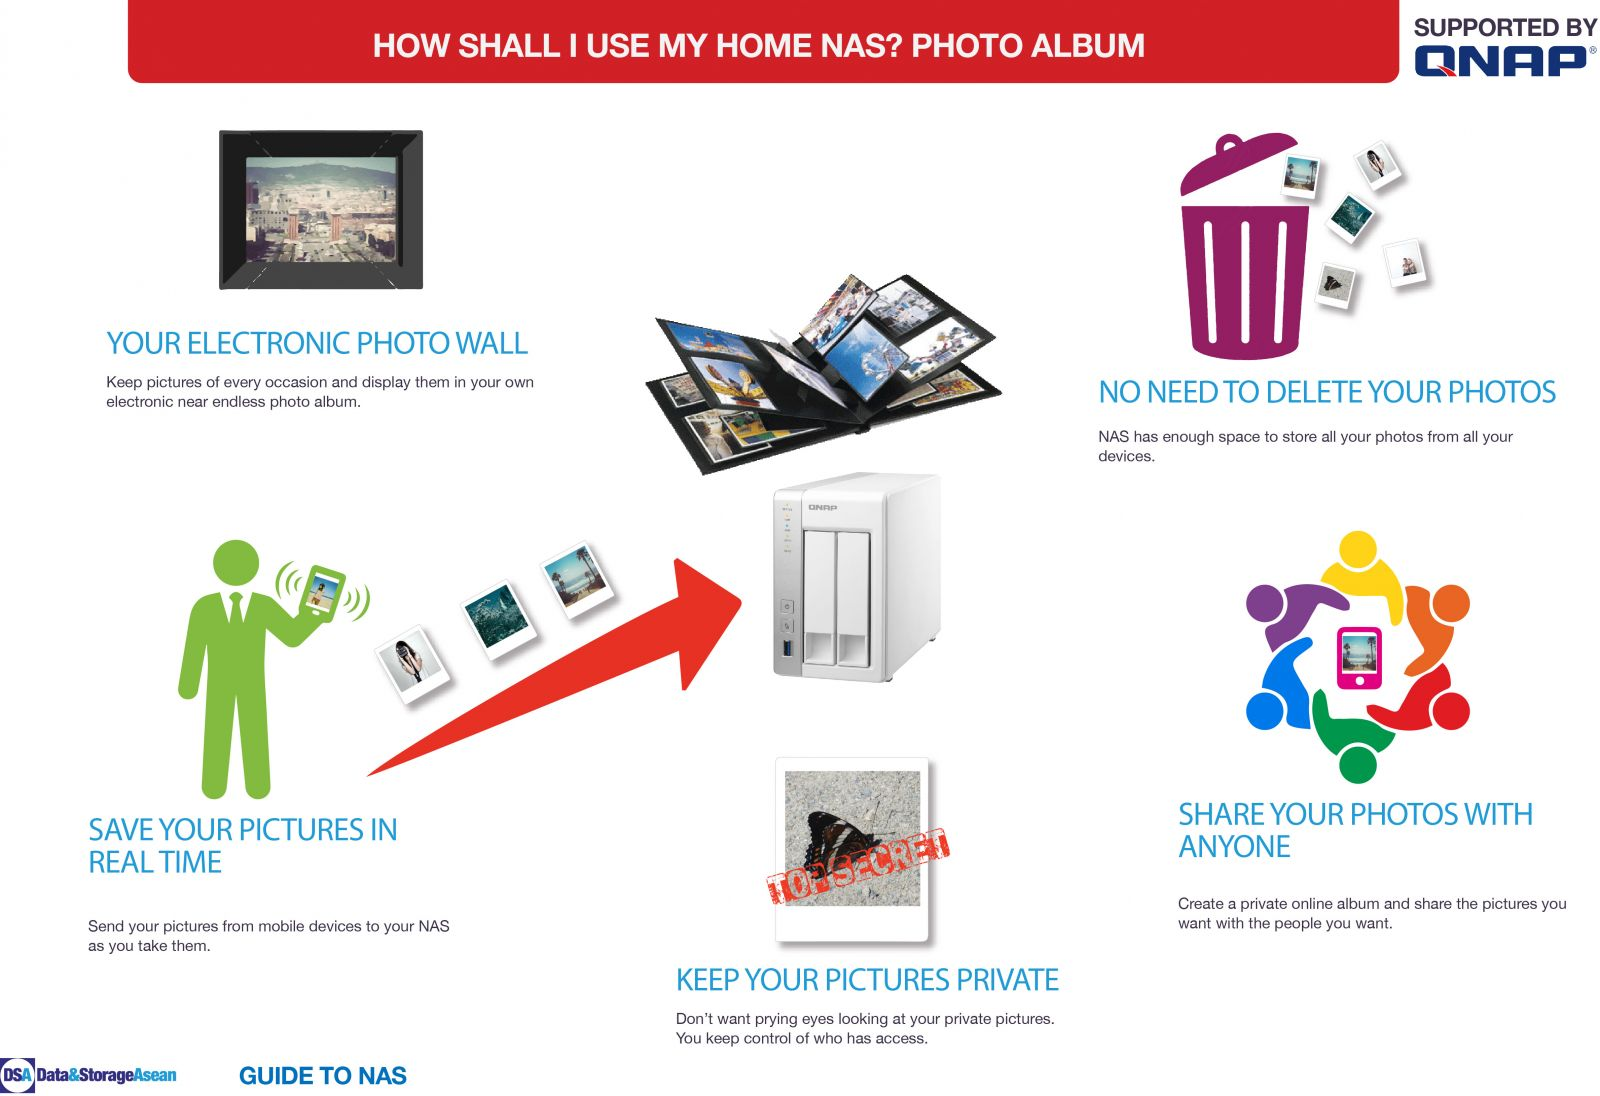 DSA How shall i use my home NAS photoalbum infographic supported by QNAP.pdf